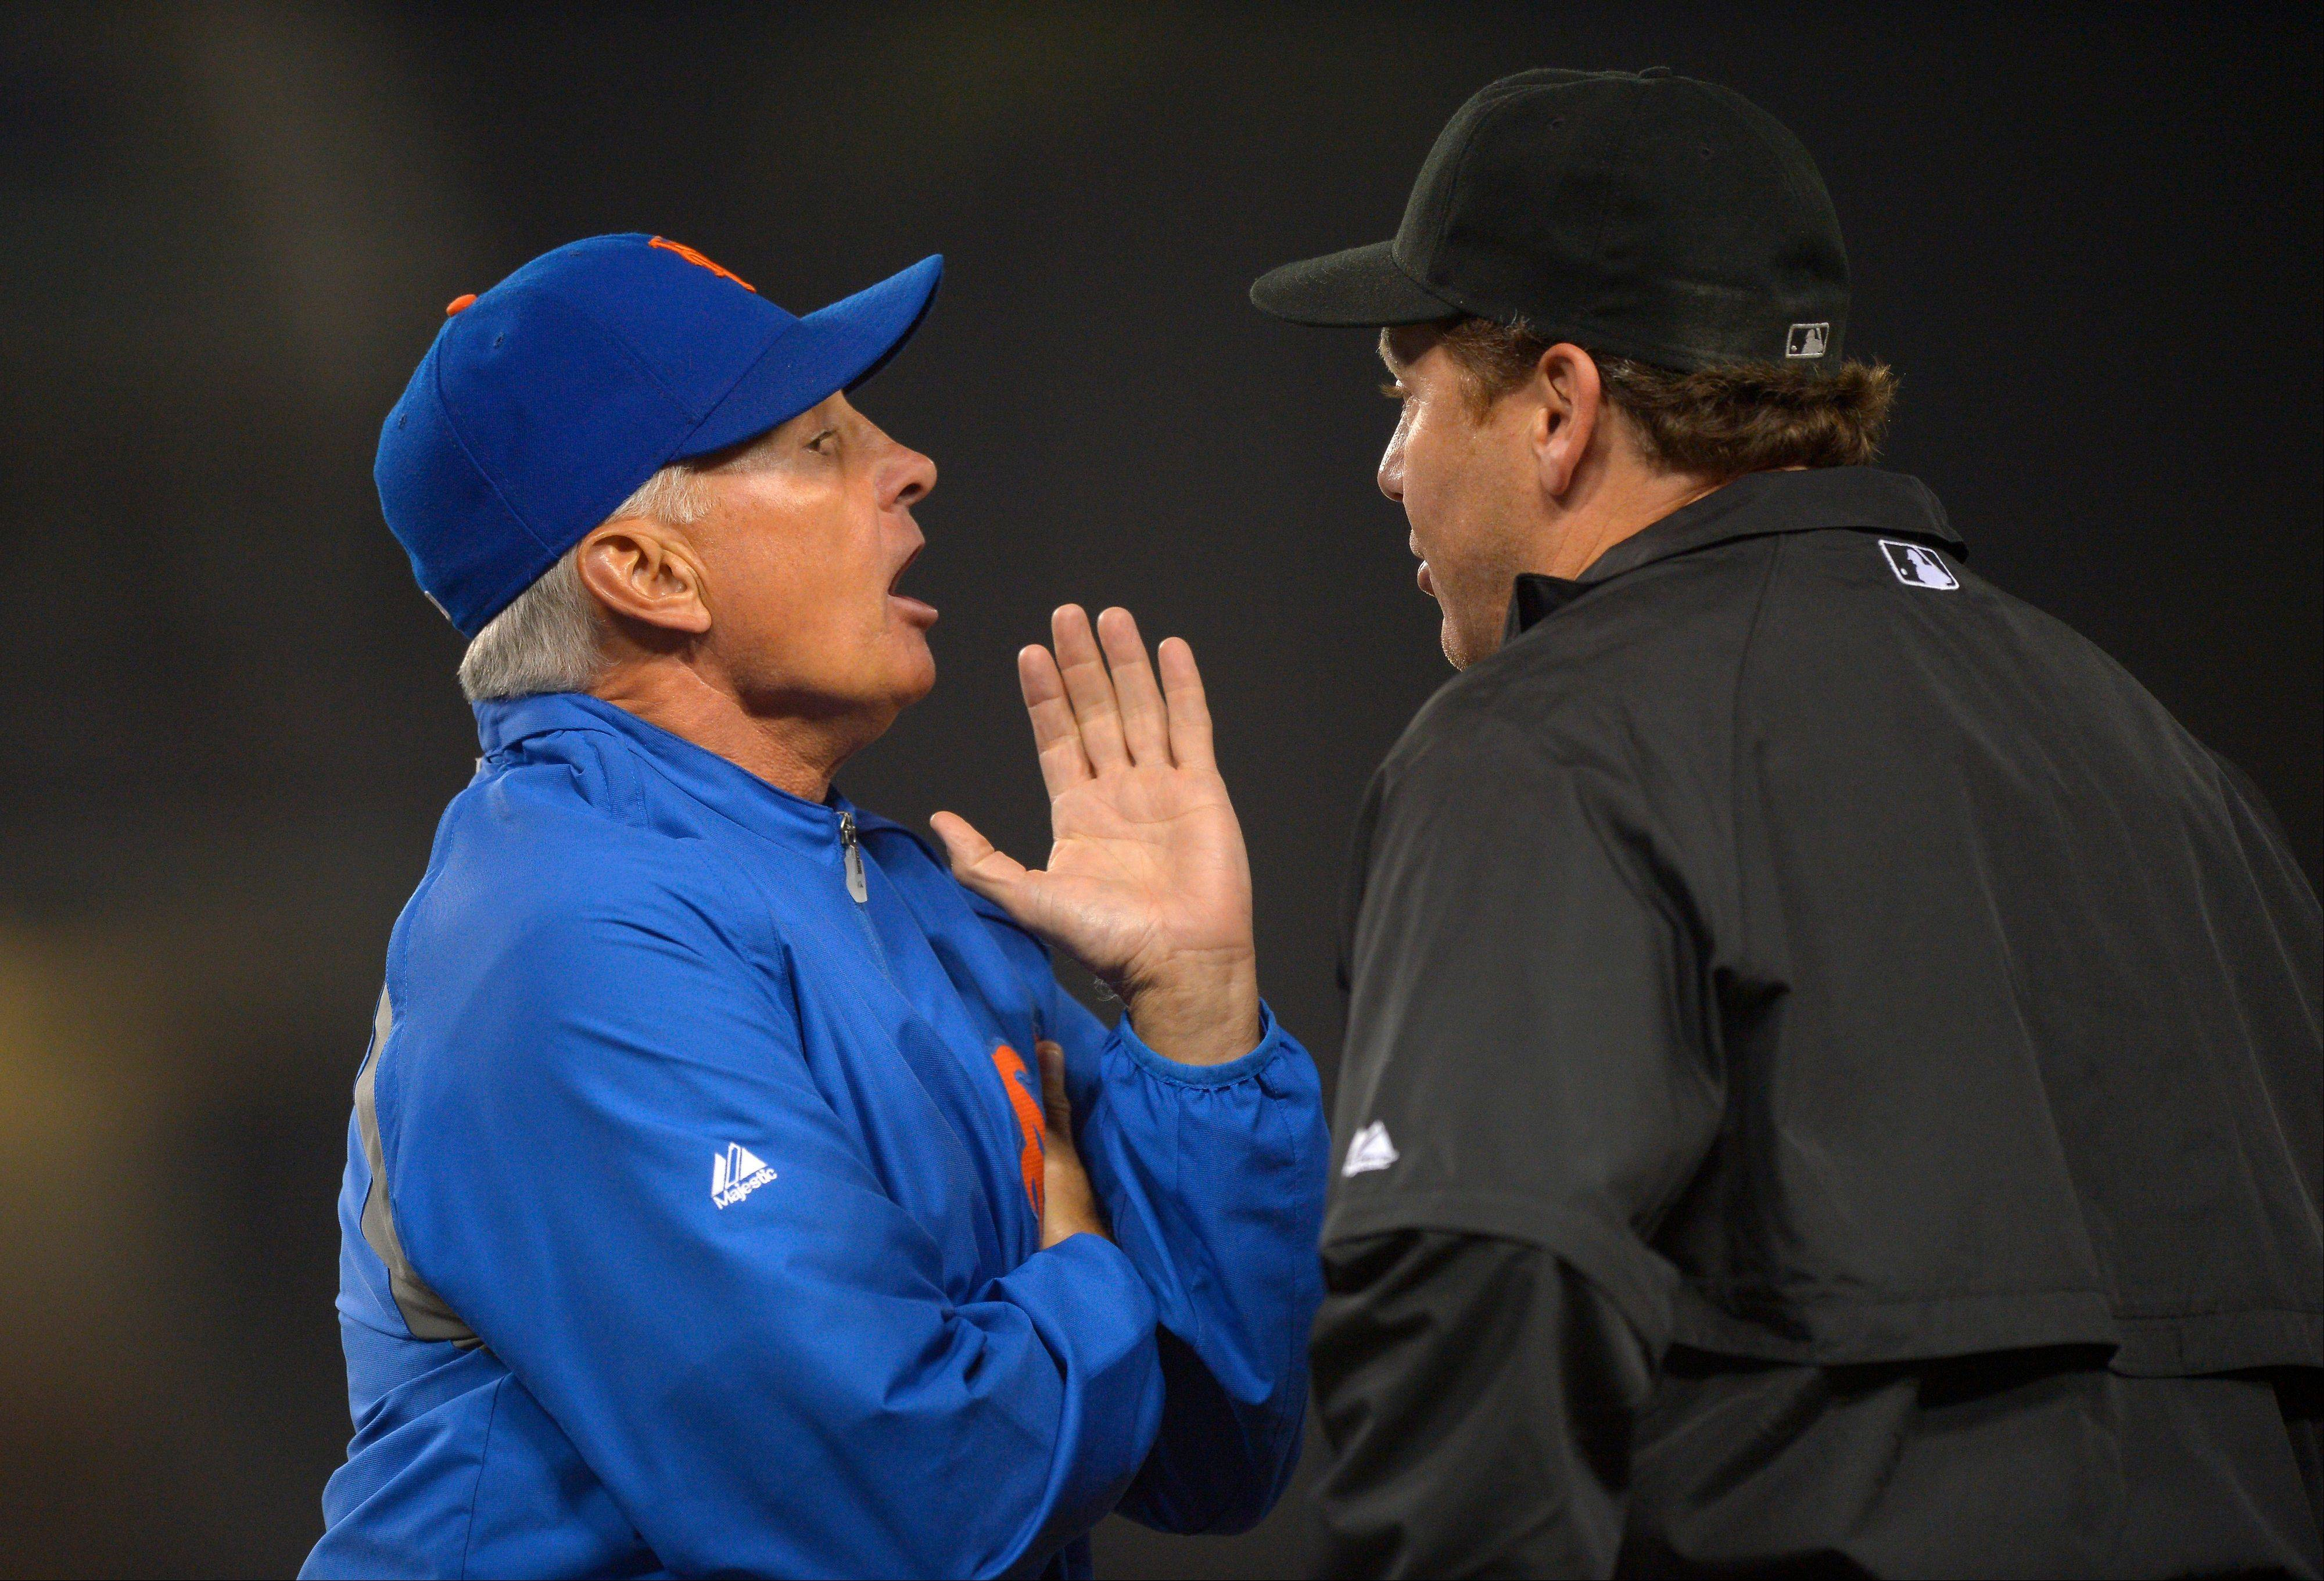 Major League Baseball wants to expand its use of instant replay in 2014 and give managers more opportunities to challenge calls that could be reviewed.